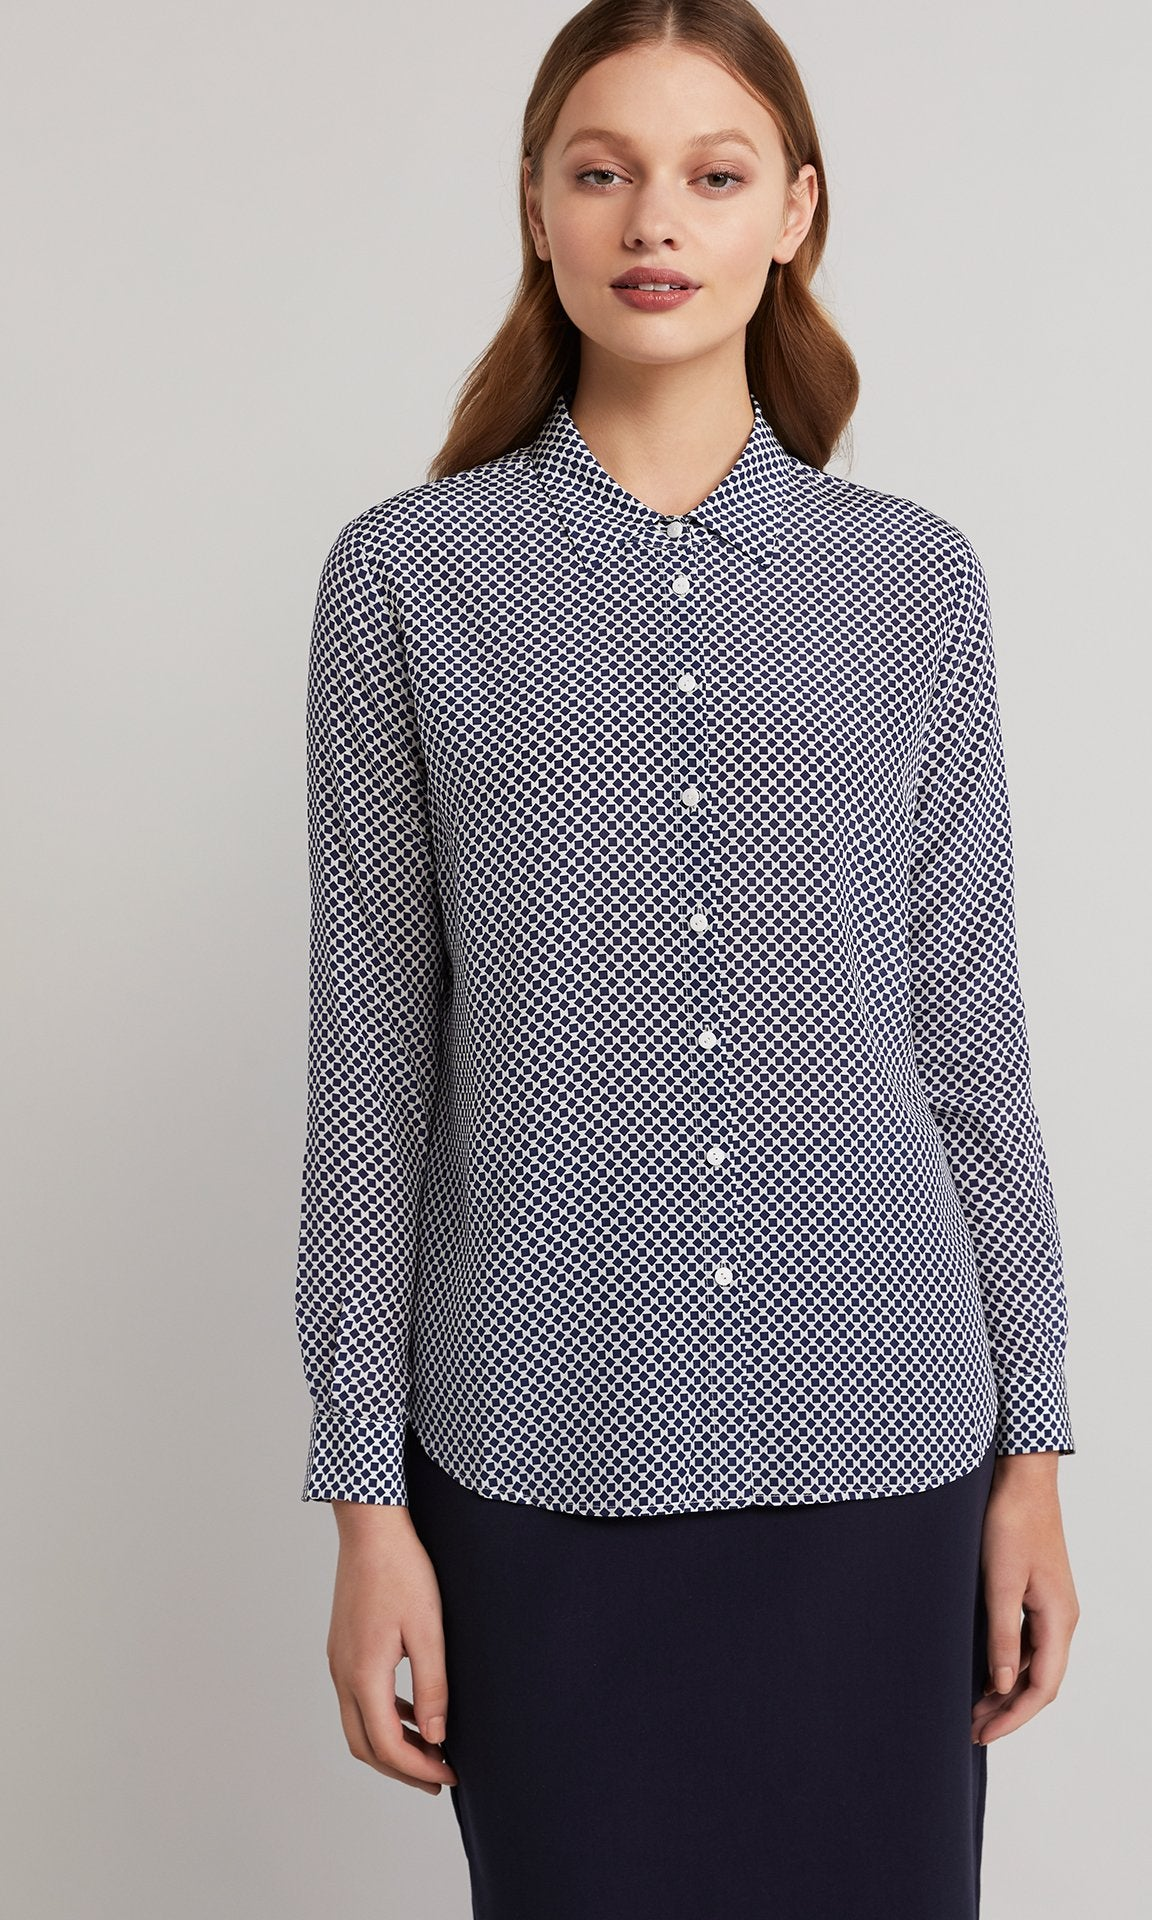 Violetta Shirt - Navy/white